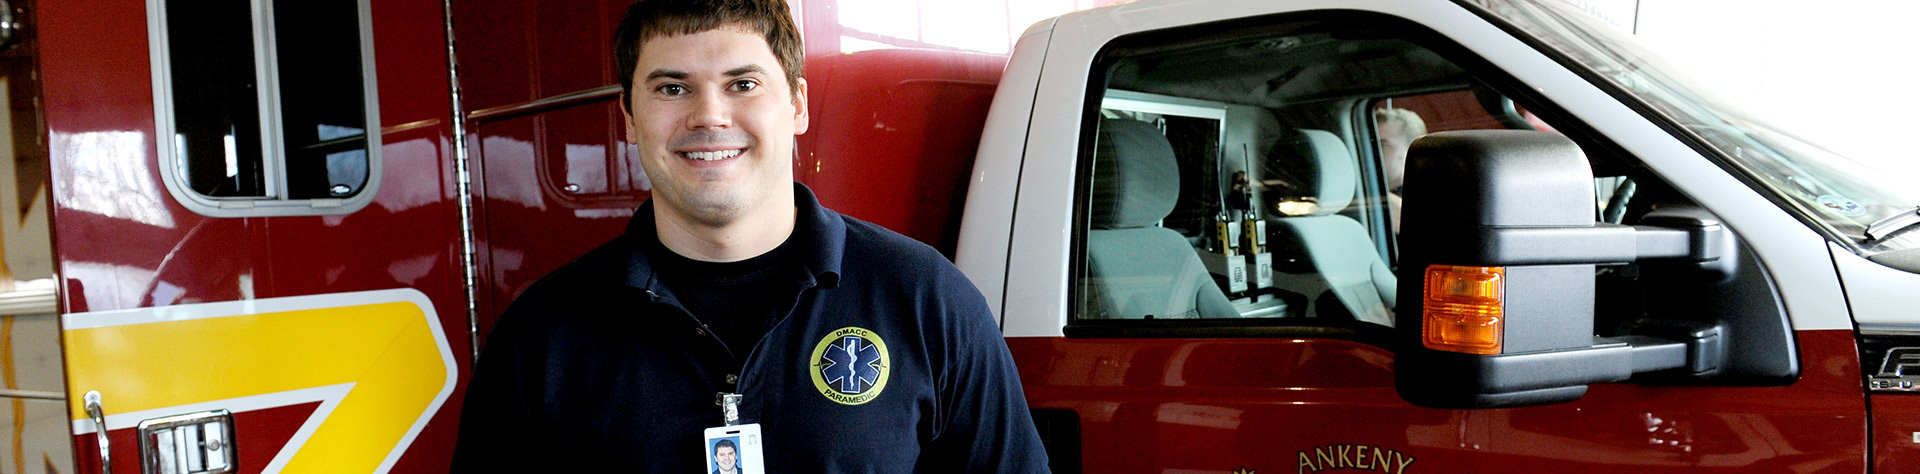 DMACC student standing next to an ambulance